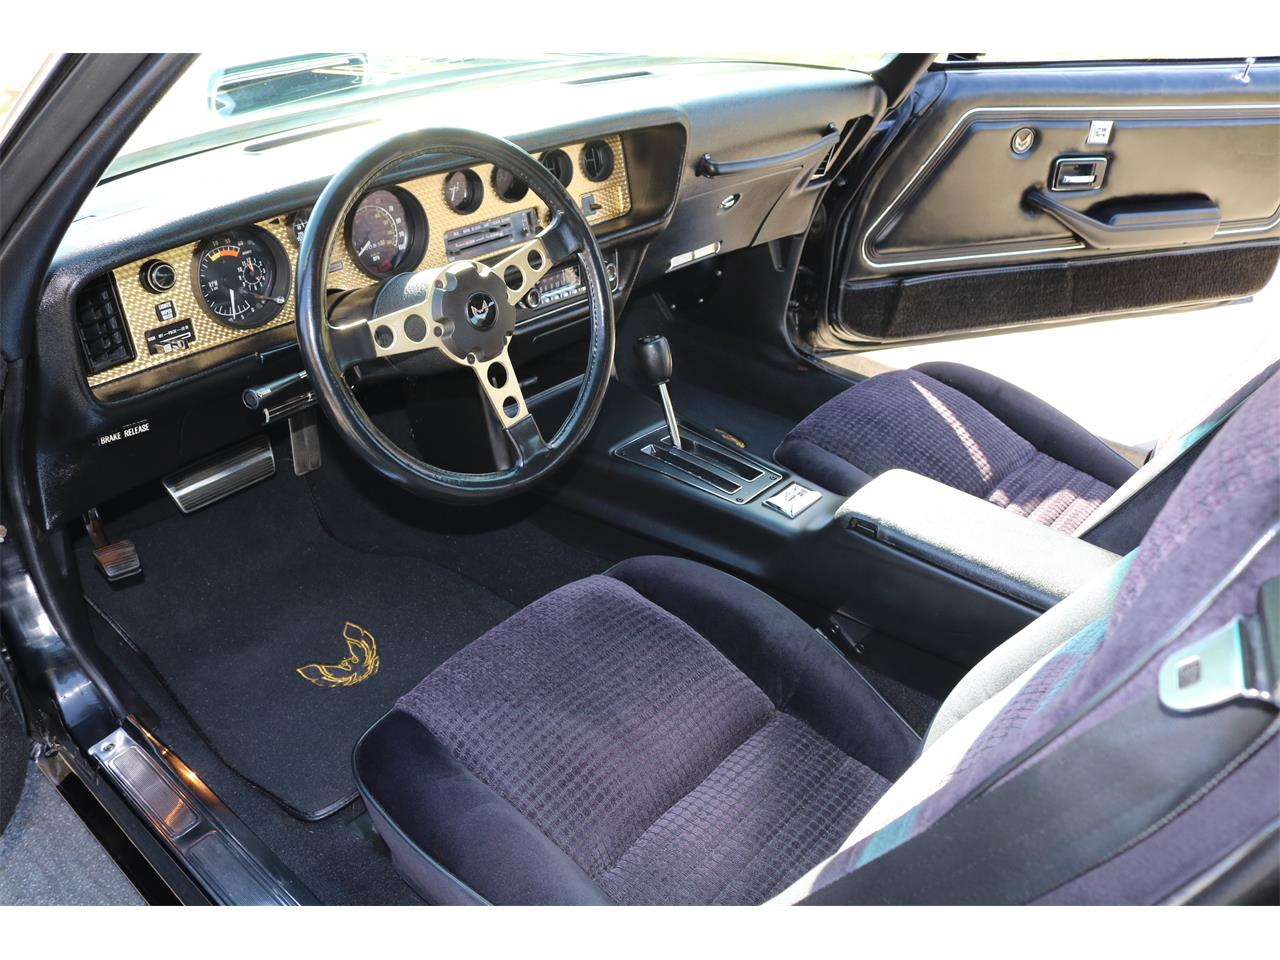 Large Picture of '79 Pontiac Firebird Trans Am SE located in California - $58,000.00 Offered by a Private Seller - N96U